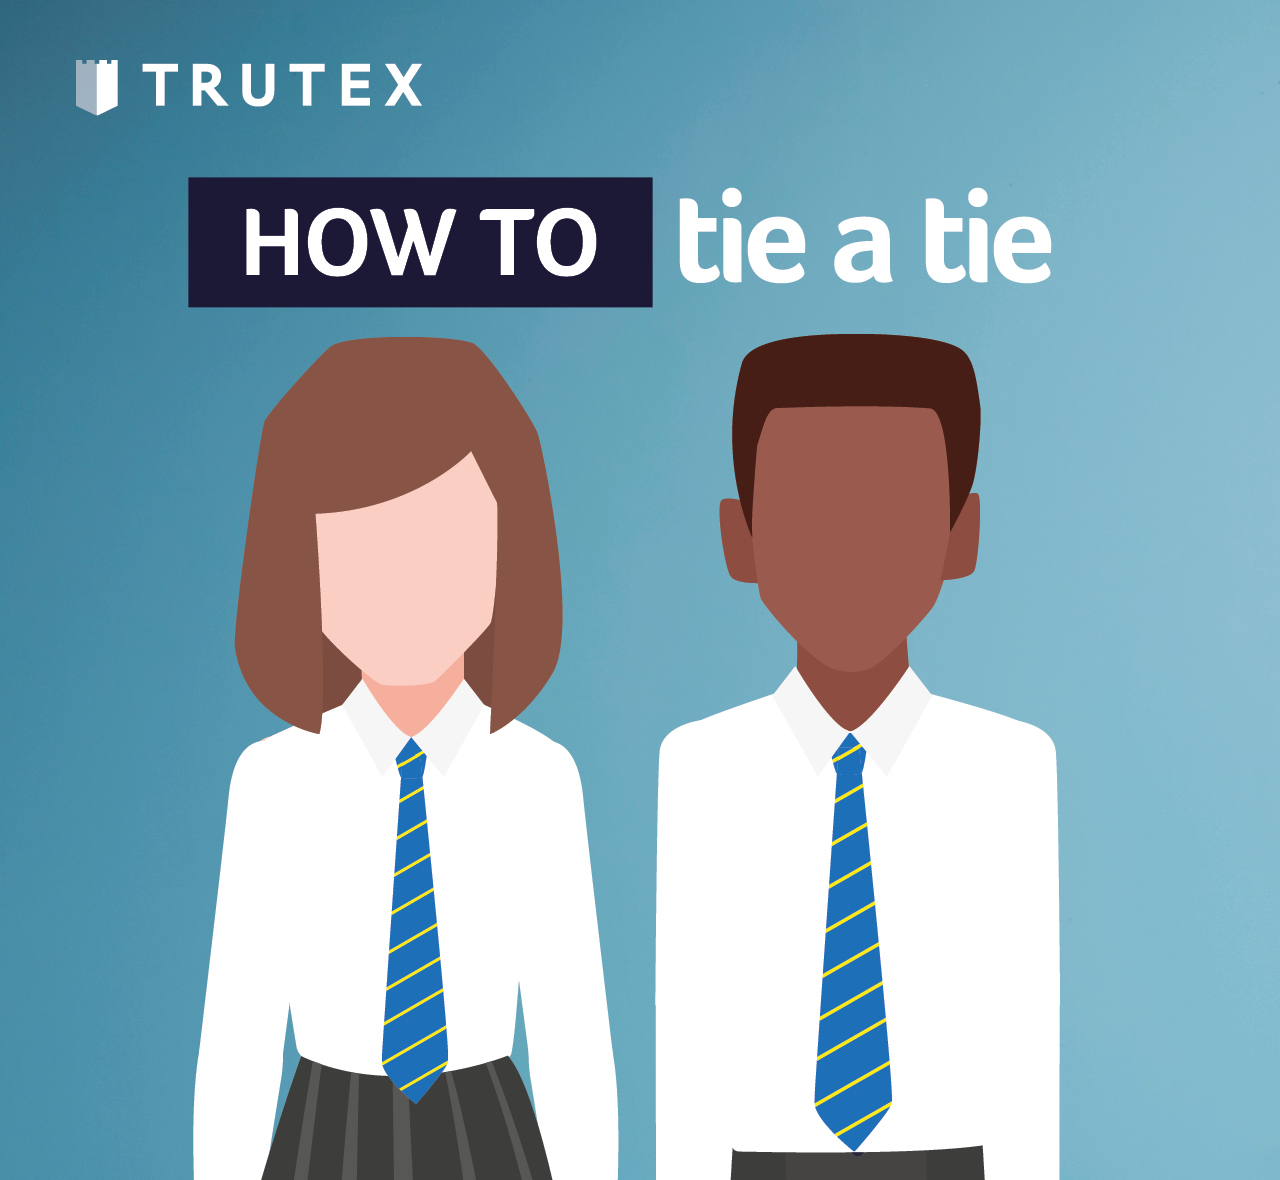 How to: tie a tie